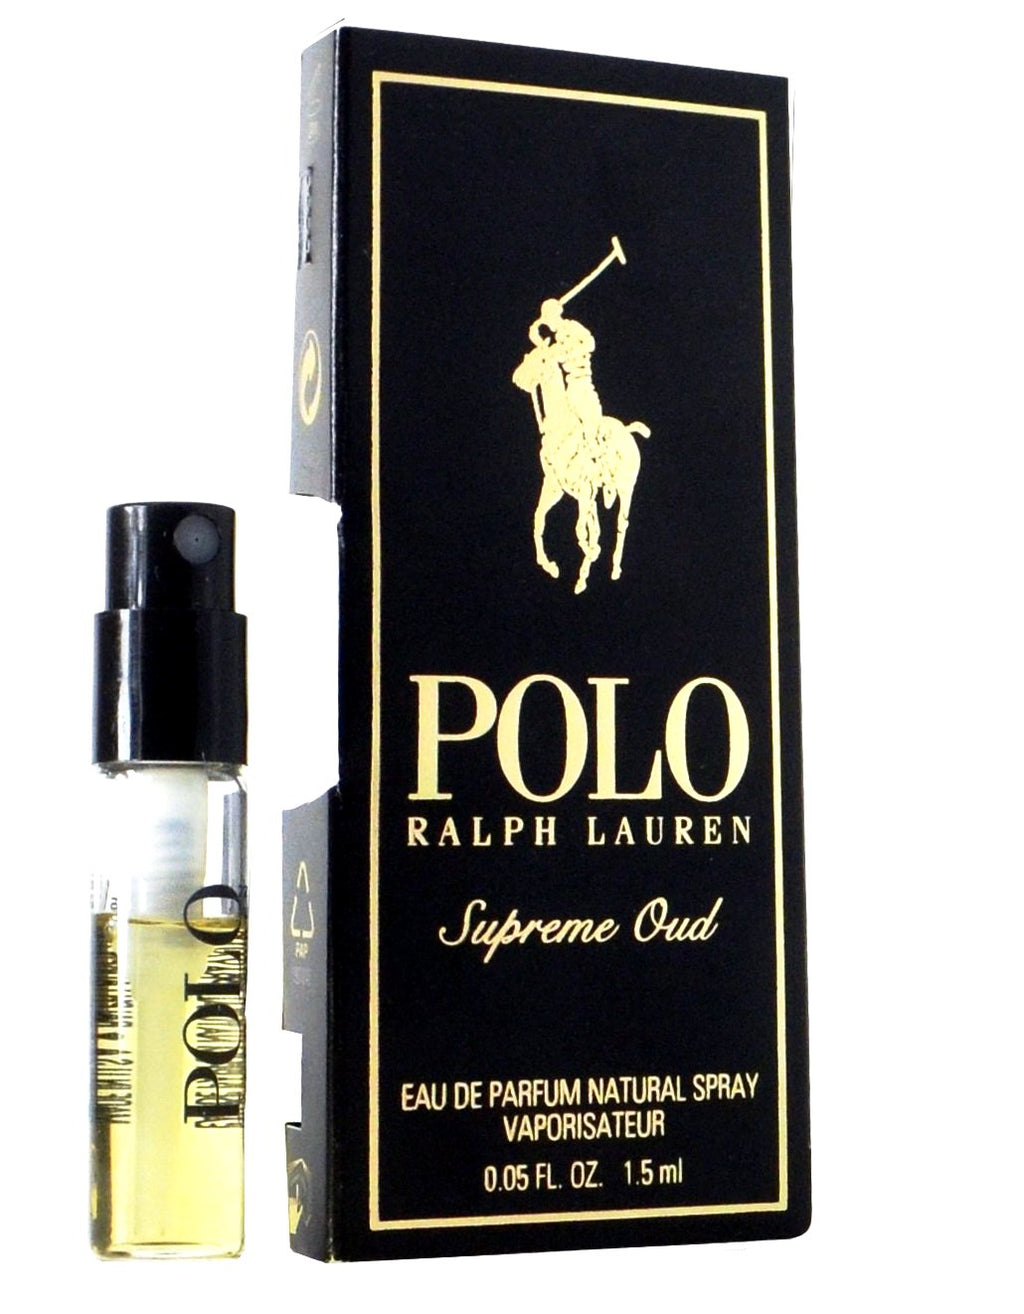 Polo Supreme Oud by Ralph Lauren Vial Sample